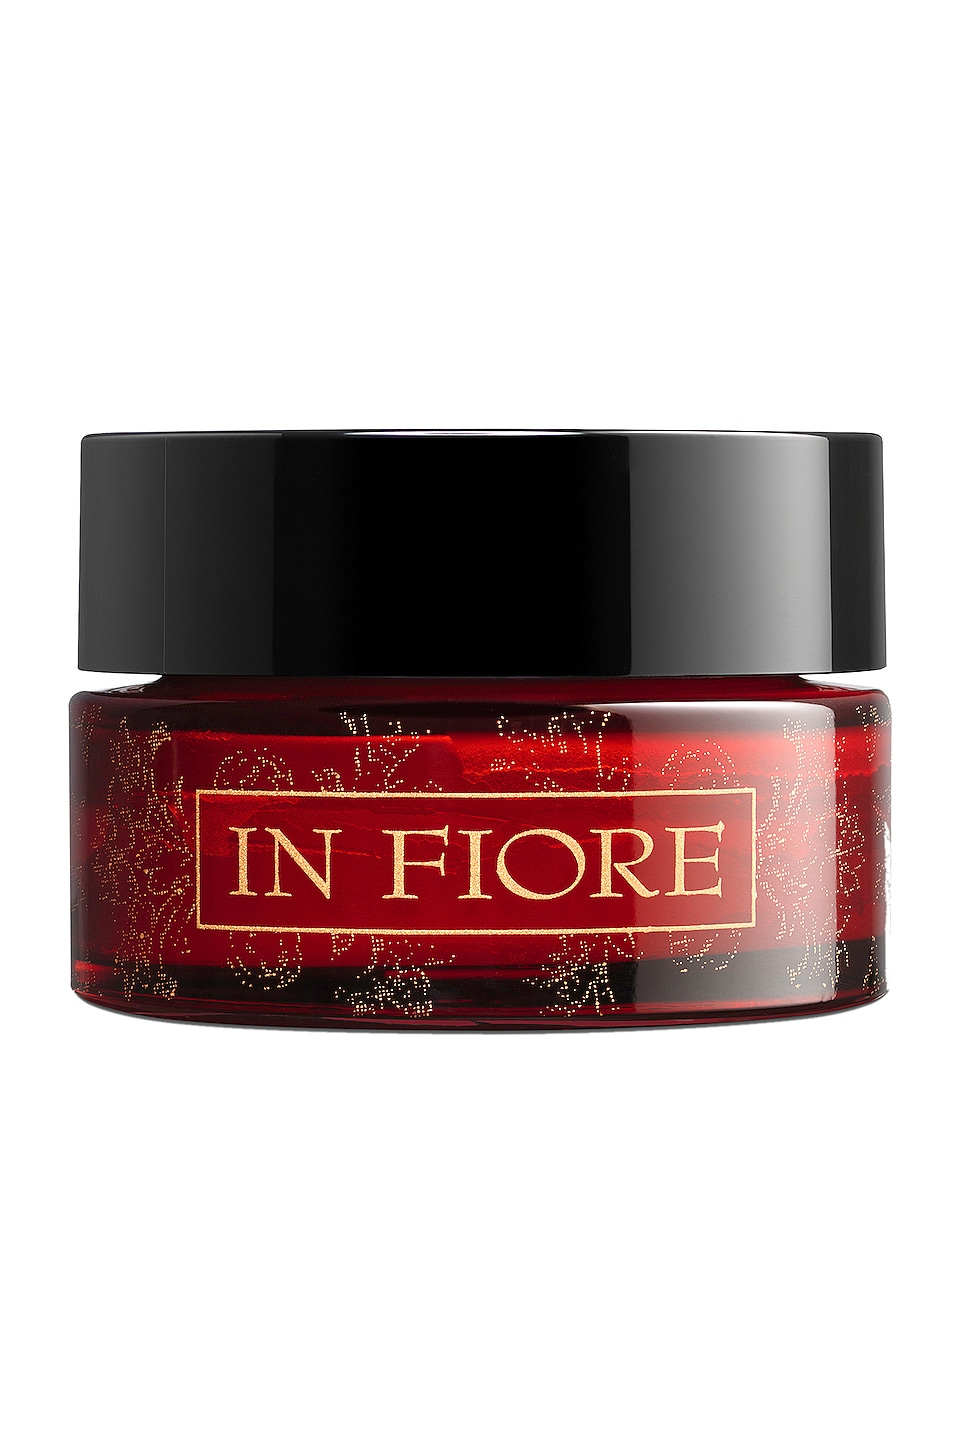 In Fiore Fleur Vibrante Face Balm Concentre